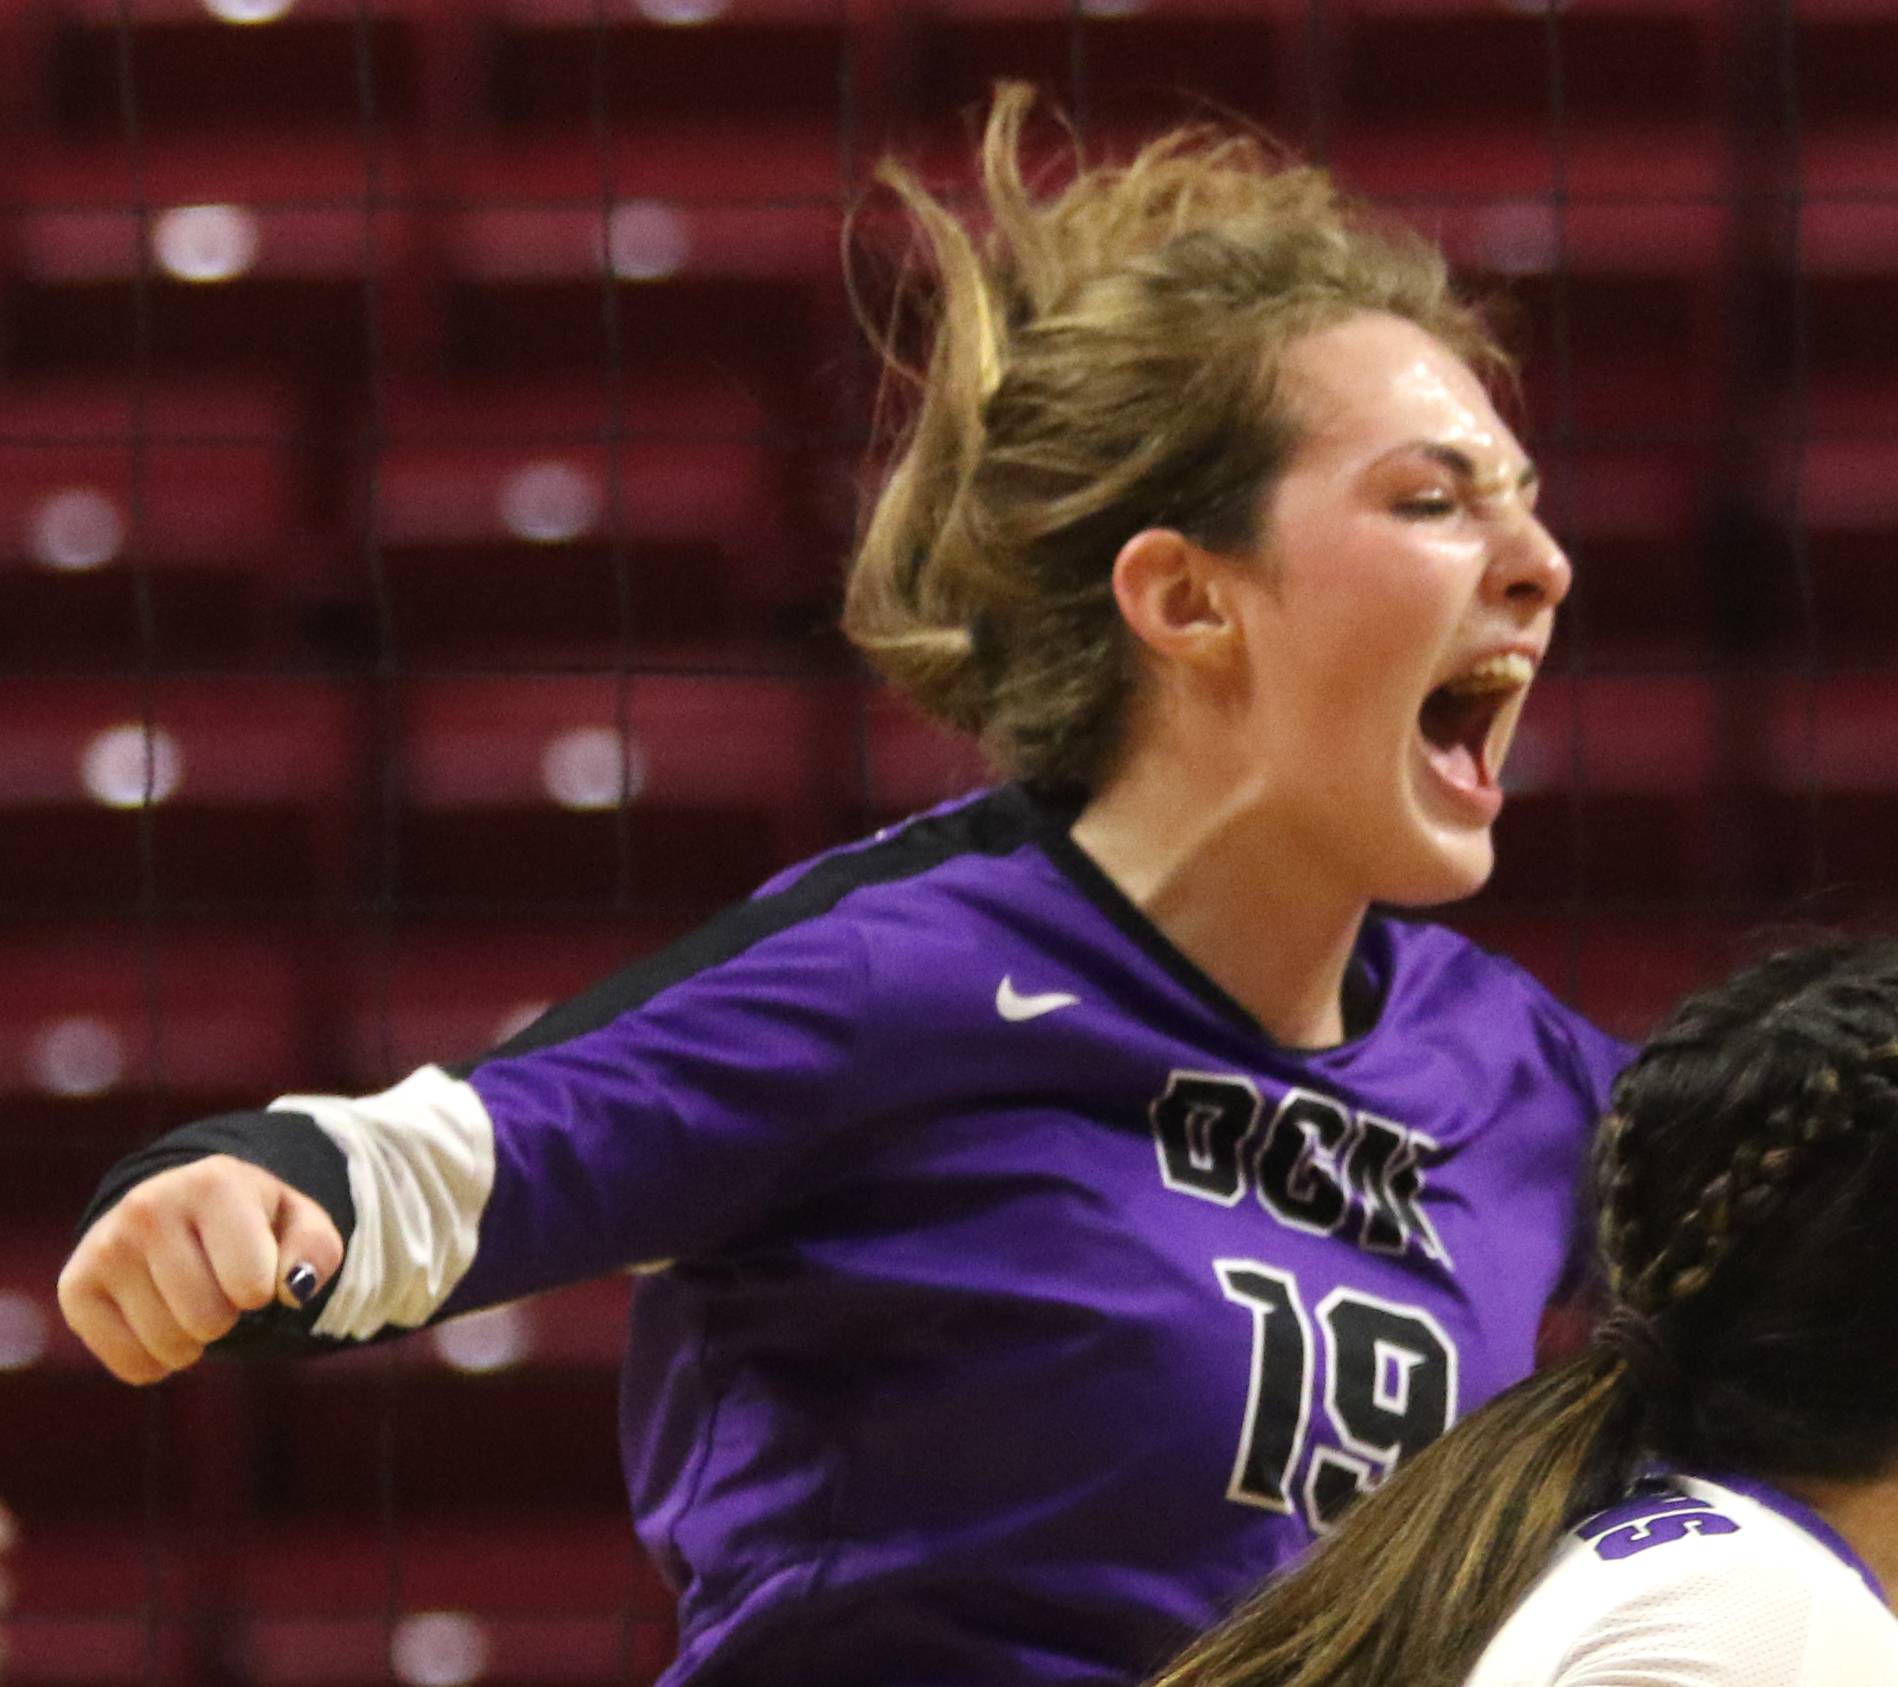 Downers Grove North's Jade Casper celebrates a point during Class 4A girls state semifinal volleyball action at Redbird Arena on the campus of Illinois State University Friday night.